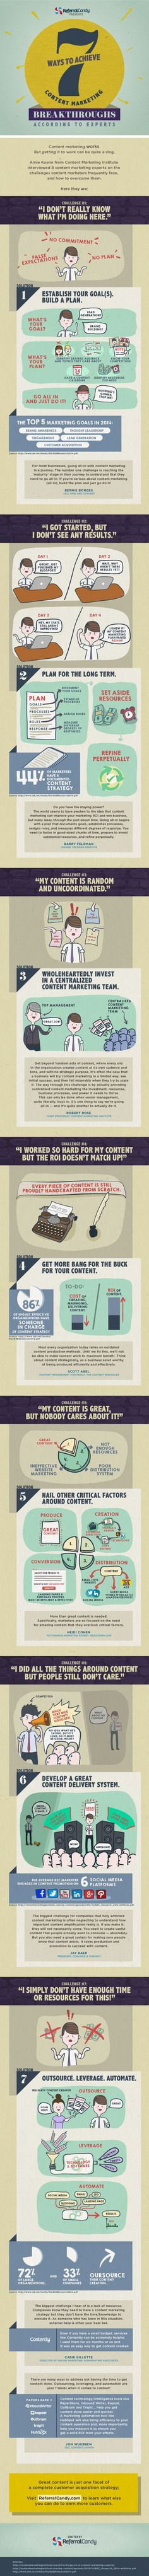 7 Ways To Achieve #ContentMarketing Breakthroughs, According To Experts #Infographic